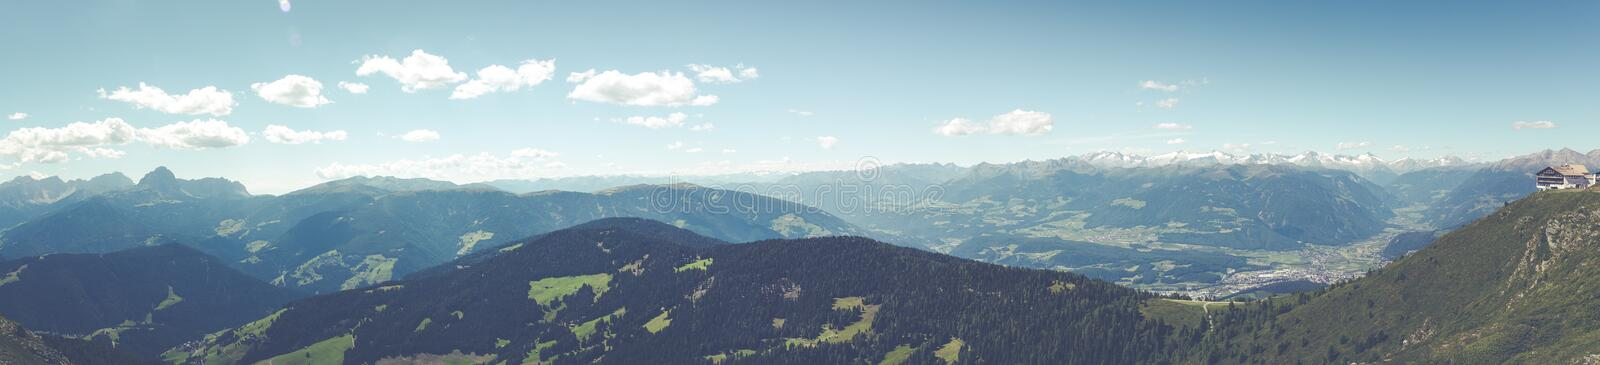 Top of Green Mounter Under Clear Sky during Daytime royalty free stock image